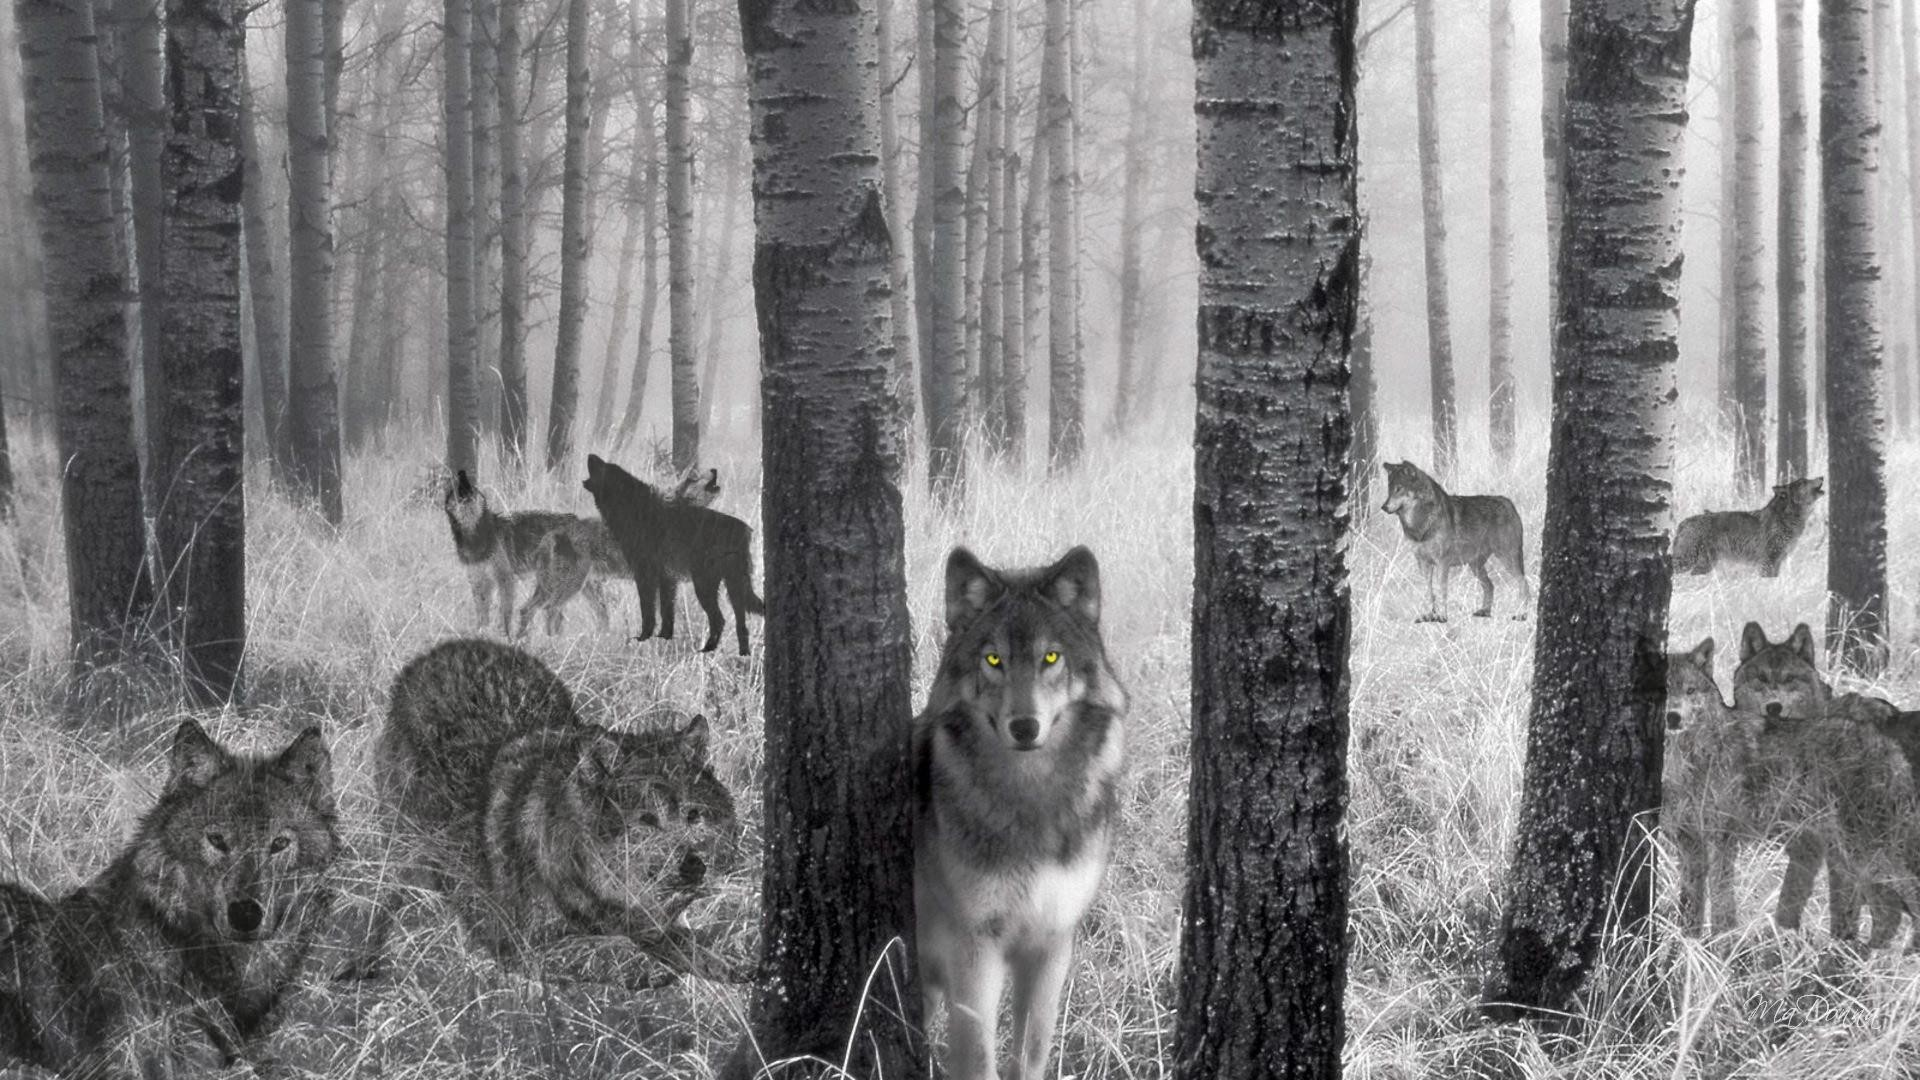 Wild Wolf Live HD Wallpaper – Android – Free Wild Wolf Live HD Wallpaper  application is a Super Live Wallpaper collection of the beauty in the world.